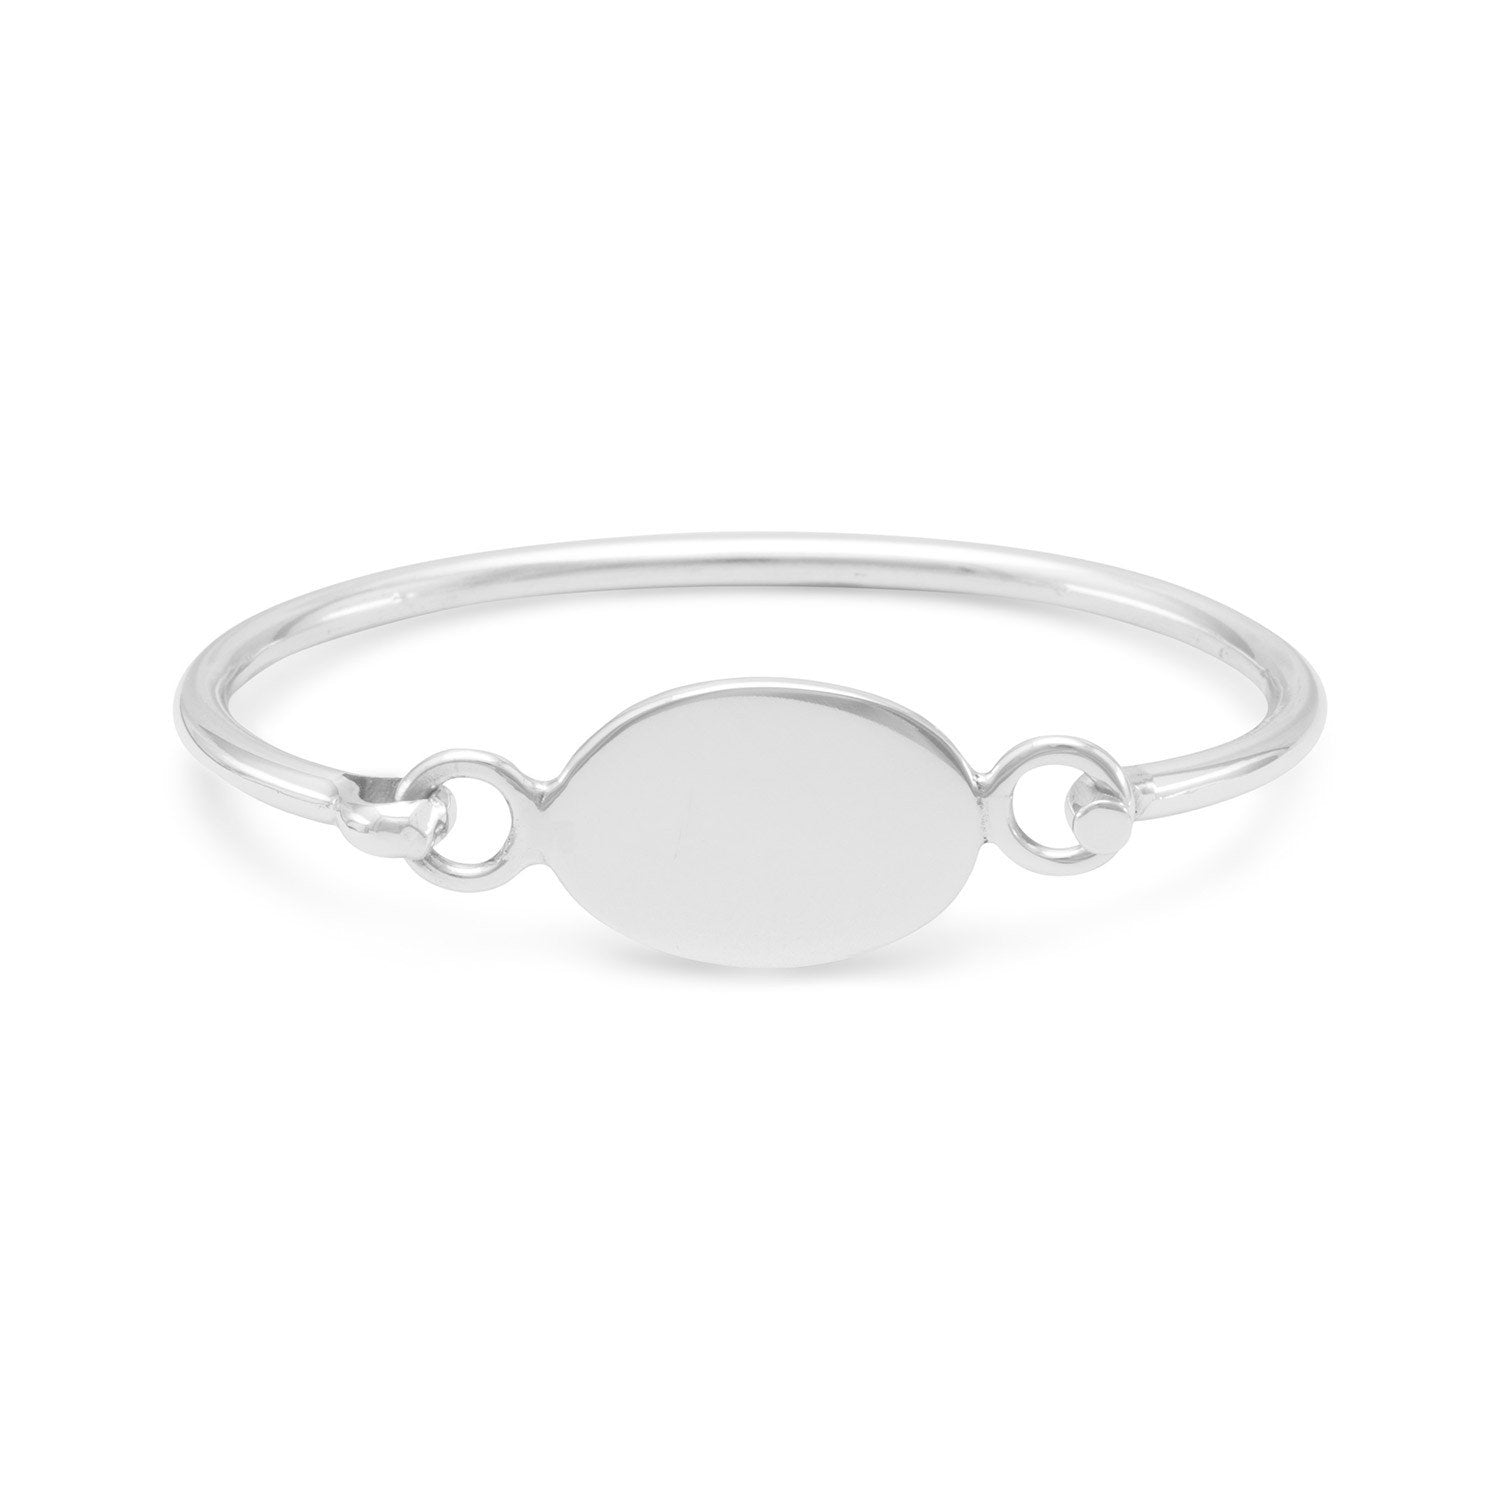 whitesilver bracelet bangles lyst adina metallic diamond in pave pav oval silver reyter sterling jewelry bangle